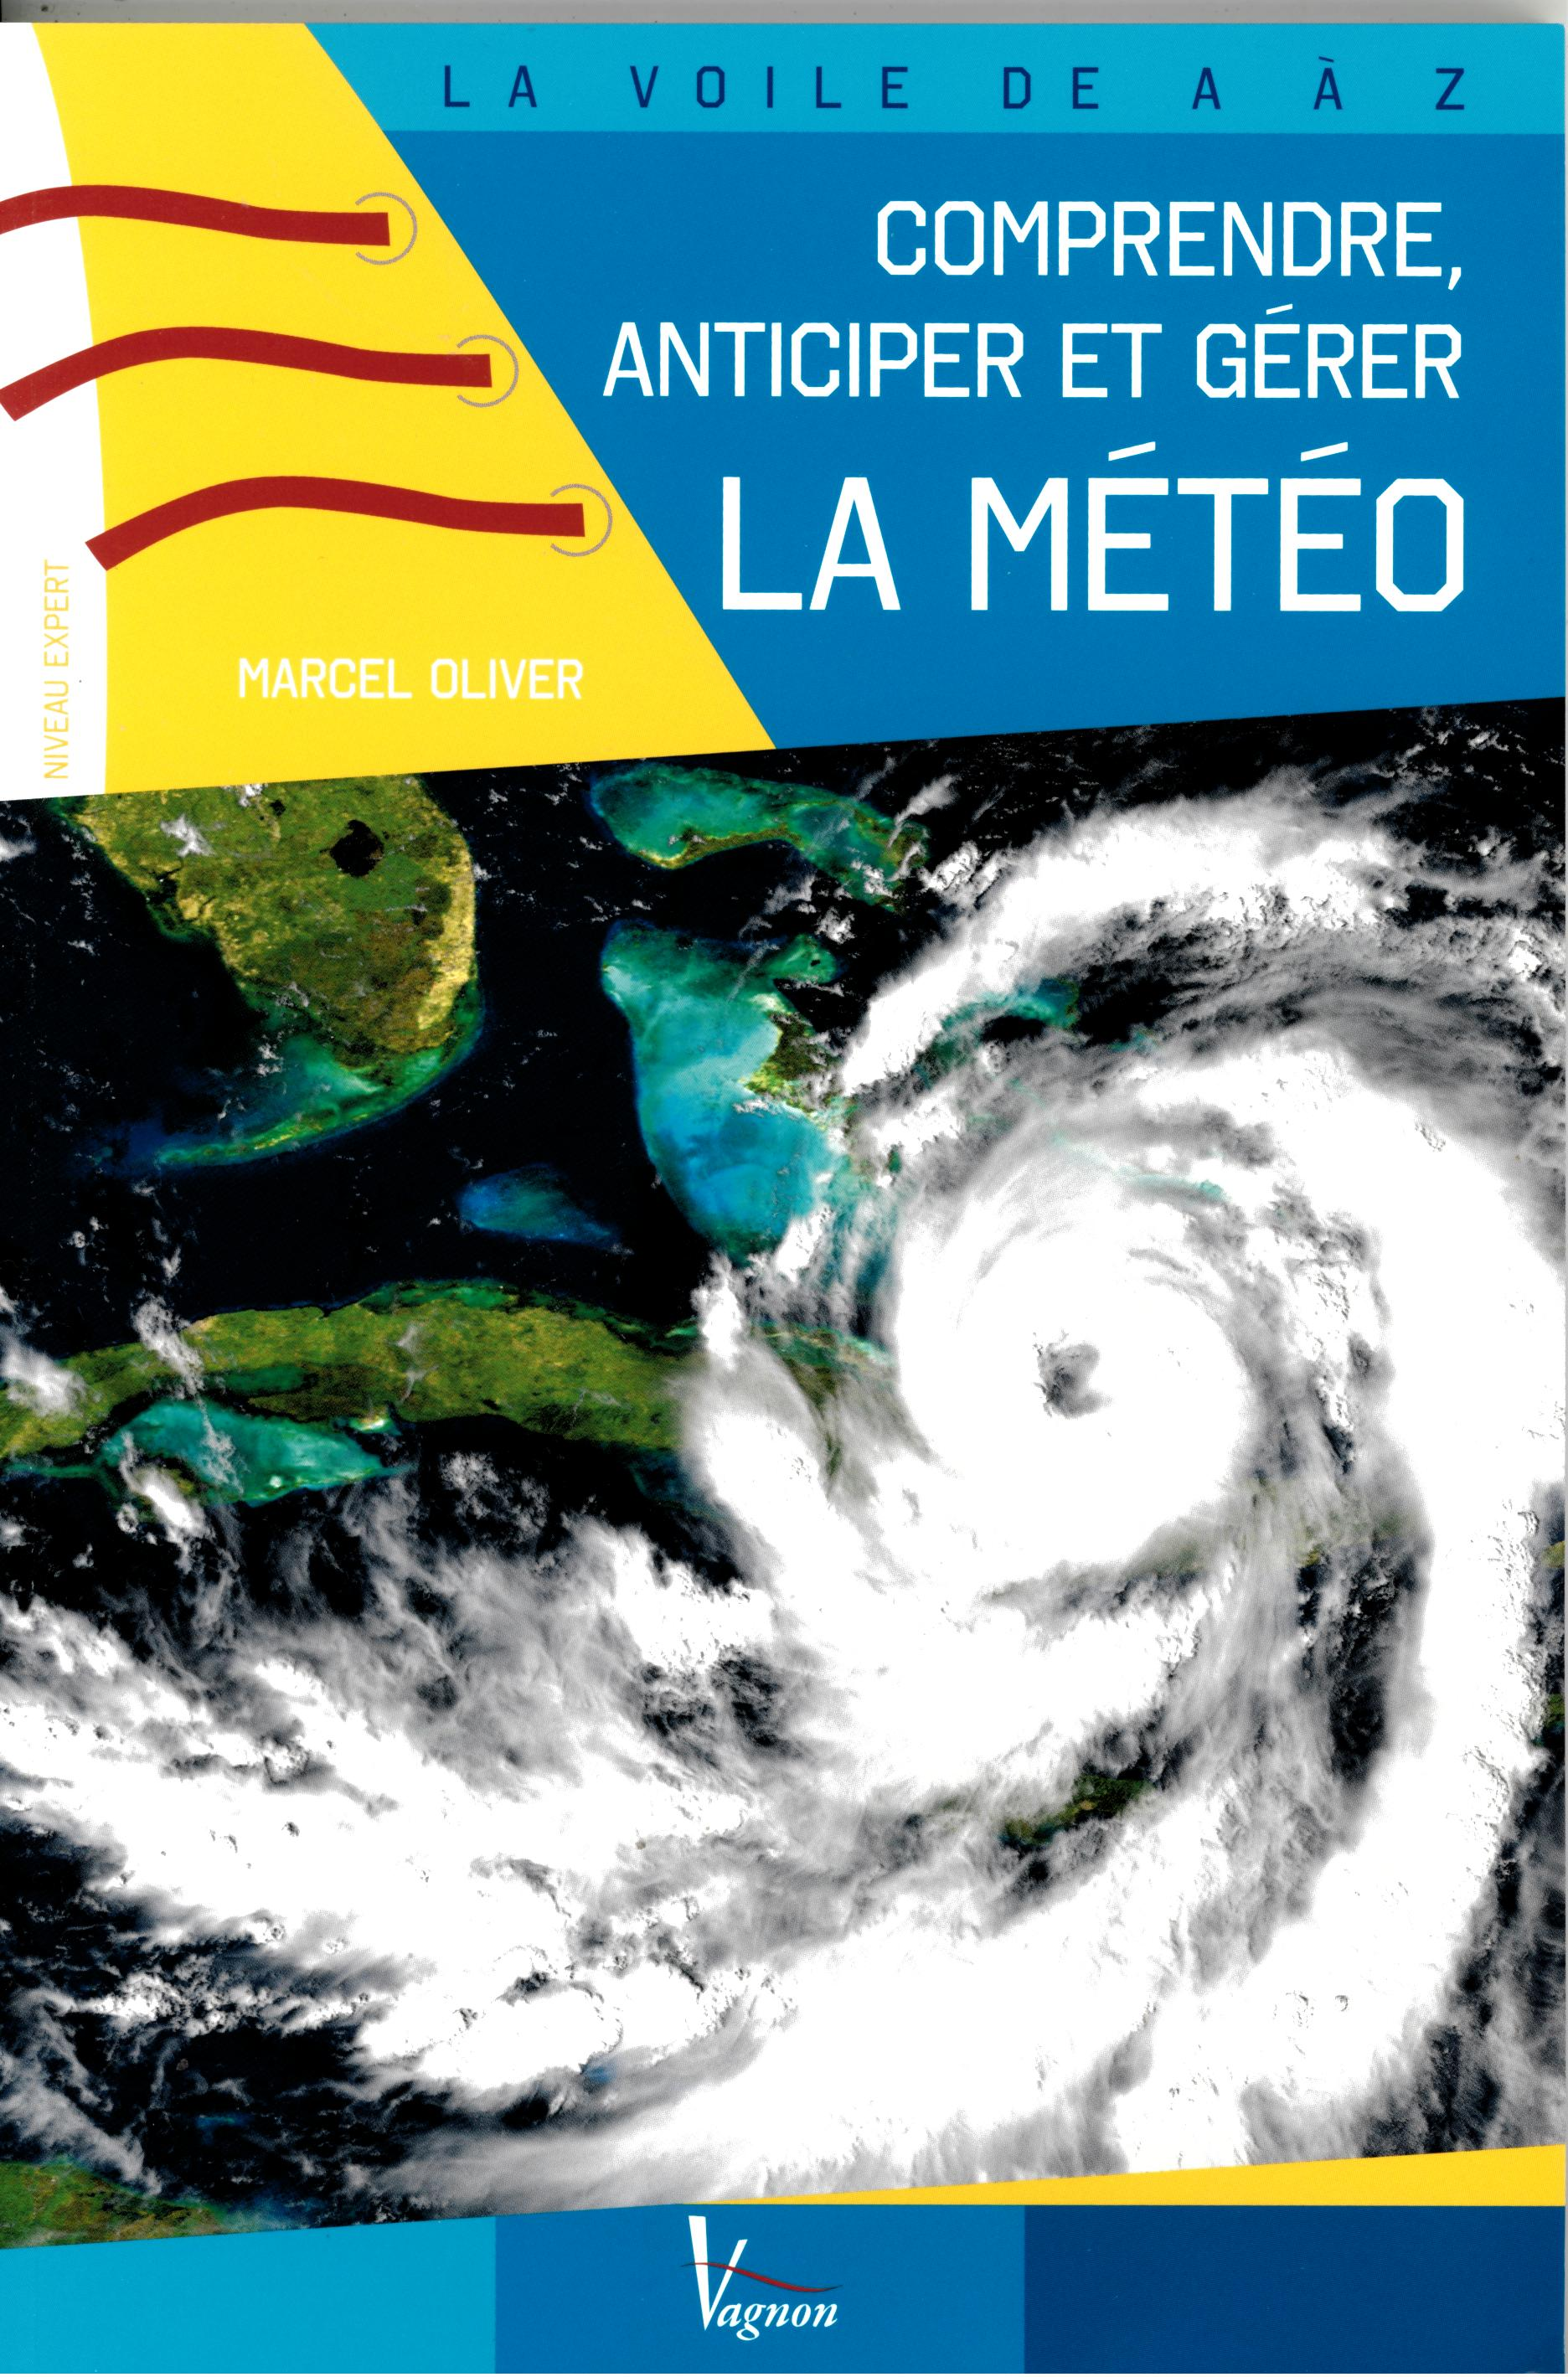 COMPRENDRE ANTICIPER ET GERER LA METEO